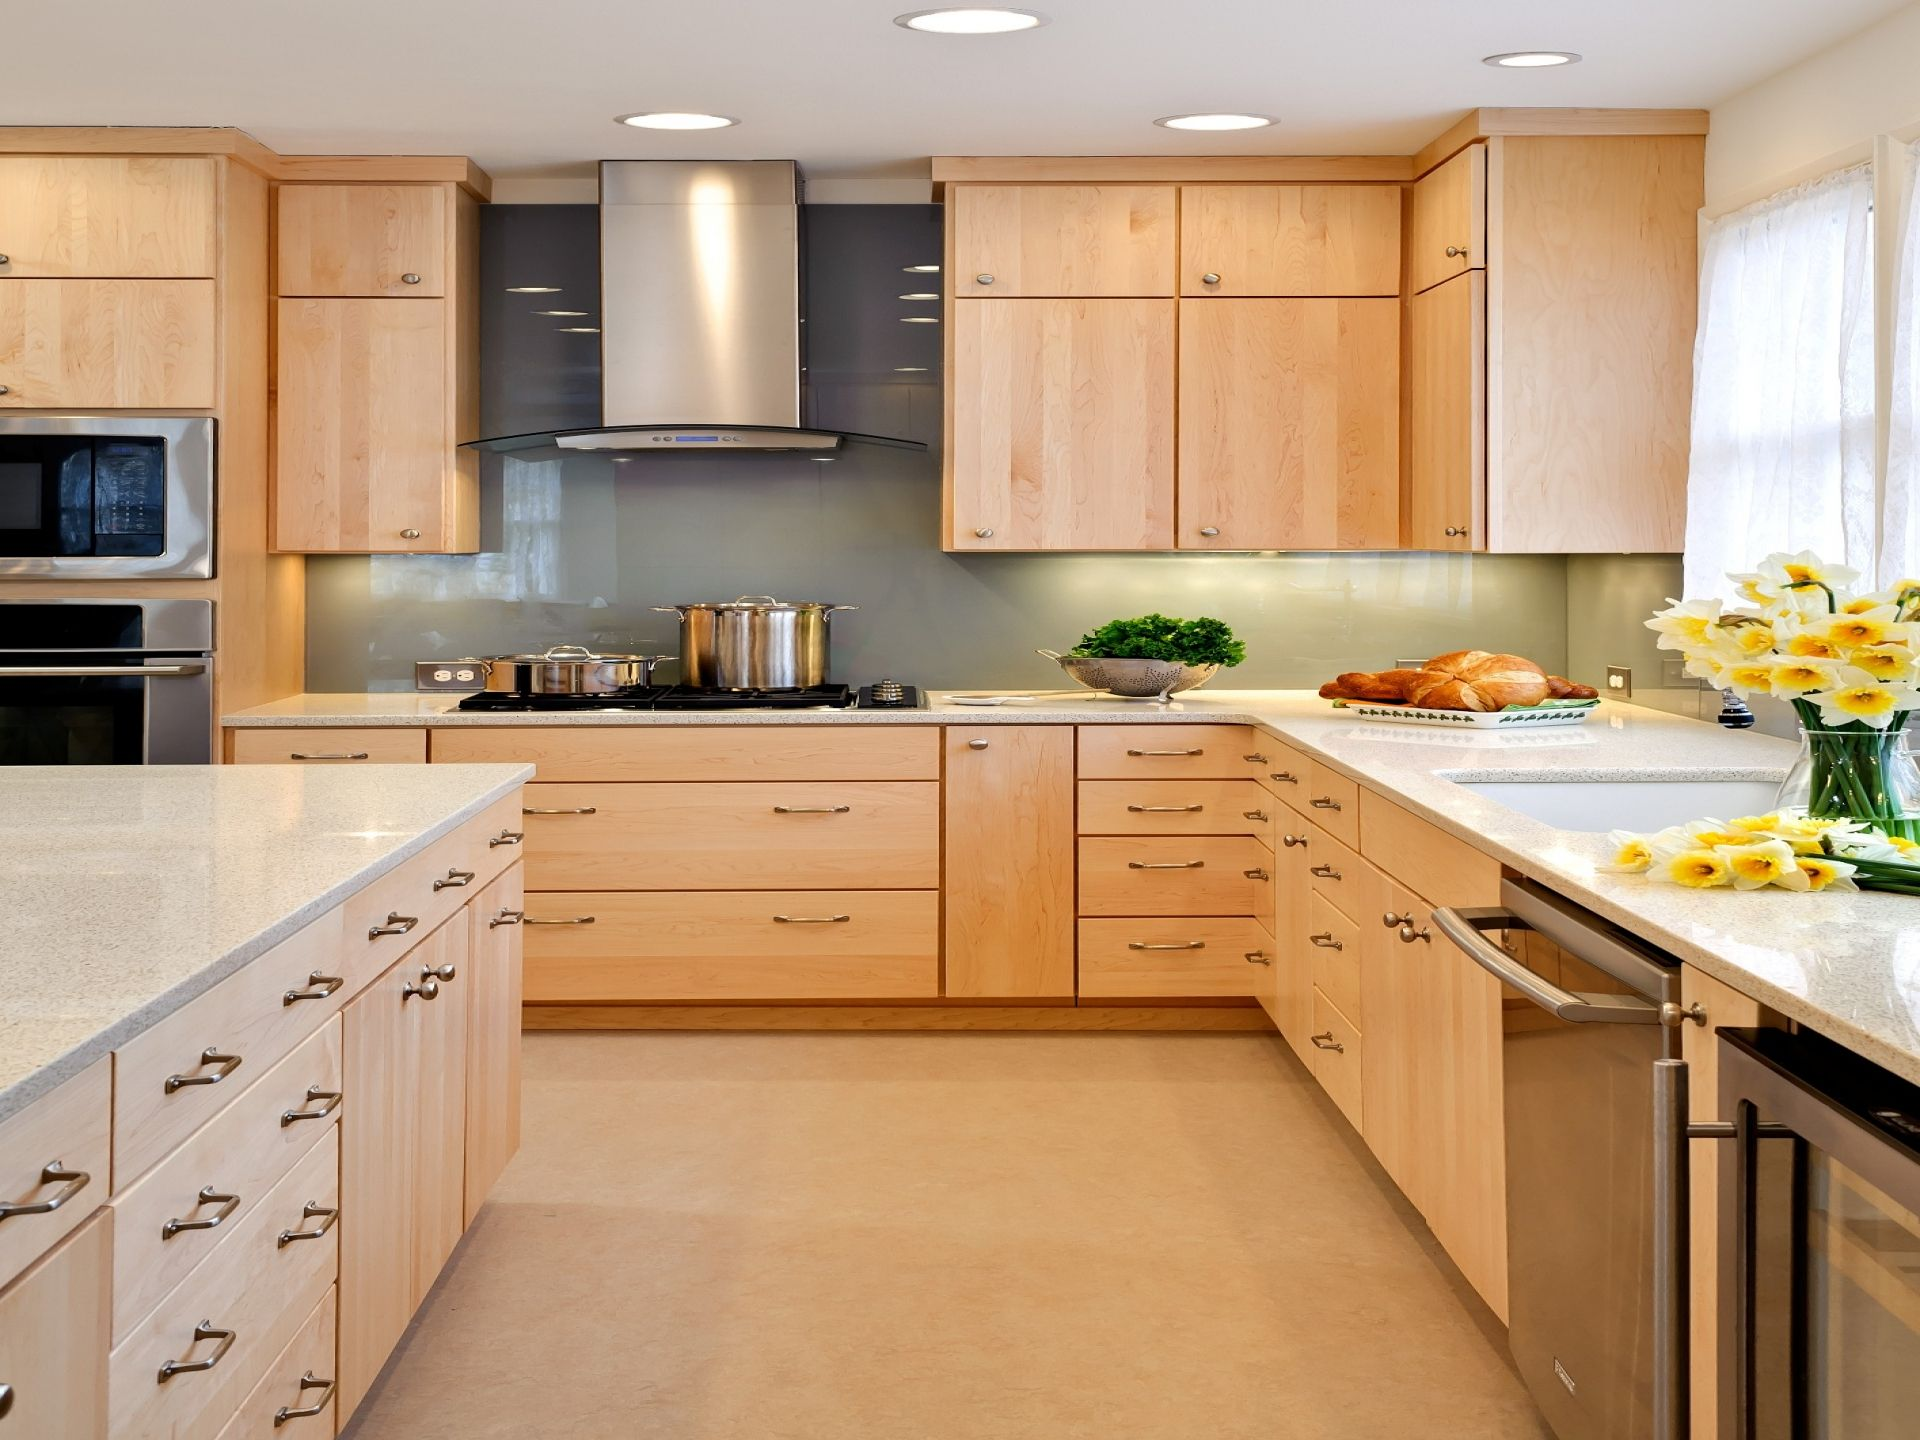 Maple Kitchen Cabinets to Have | Birch kitchen cabinets ... on Light Maple Cabinets With White Countertops  id=61897